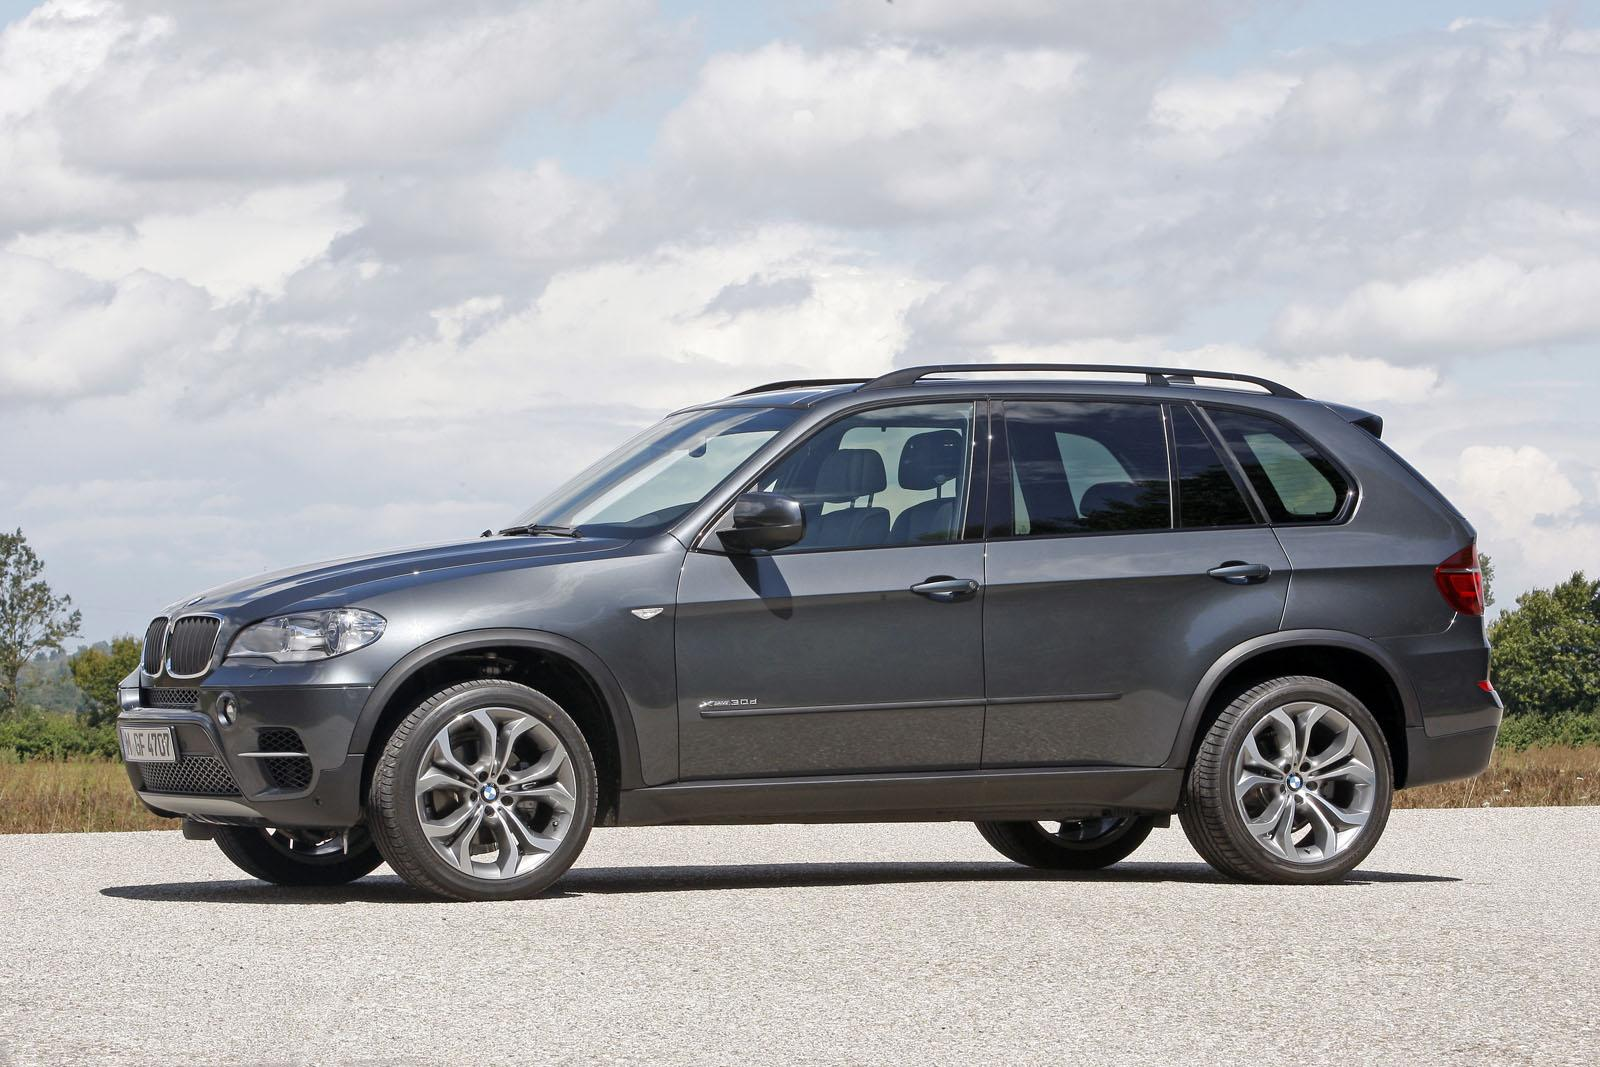 2012 BMW X5 and X6 Models 2 2012 BMW Announced Plans to Release Upgraded X5 and X6 Models